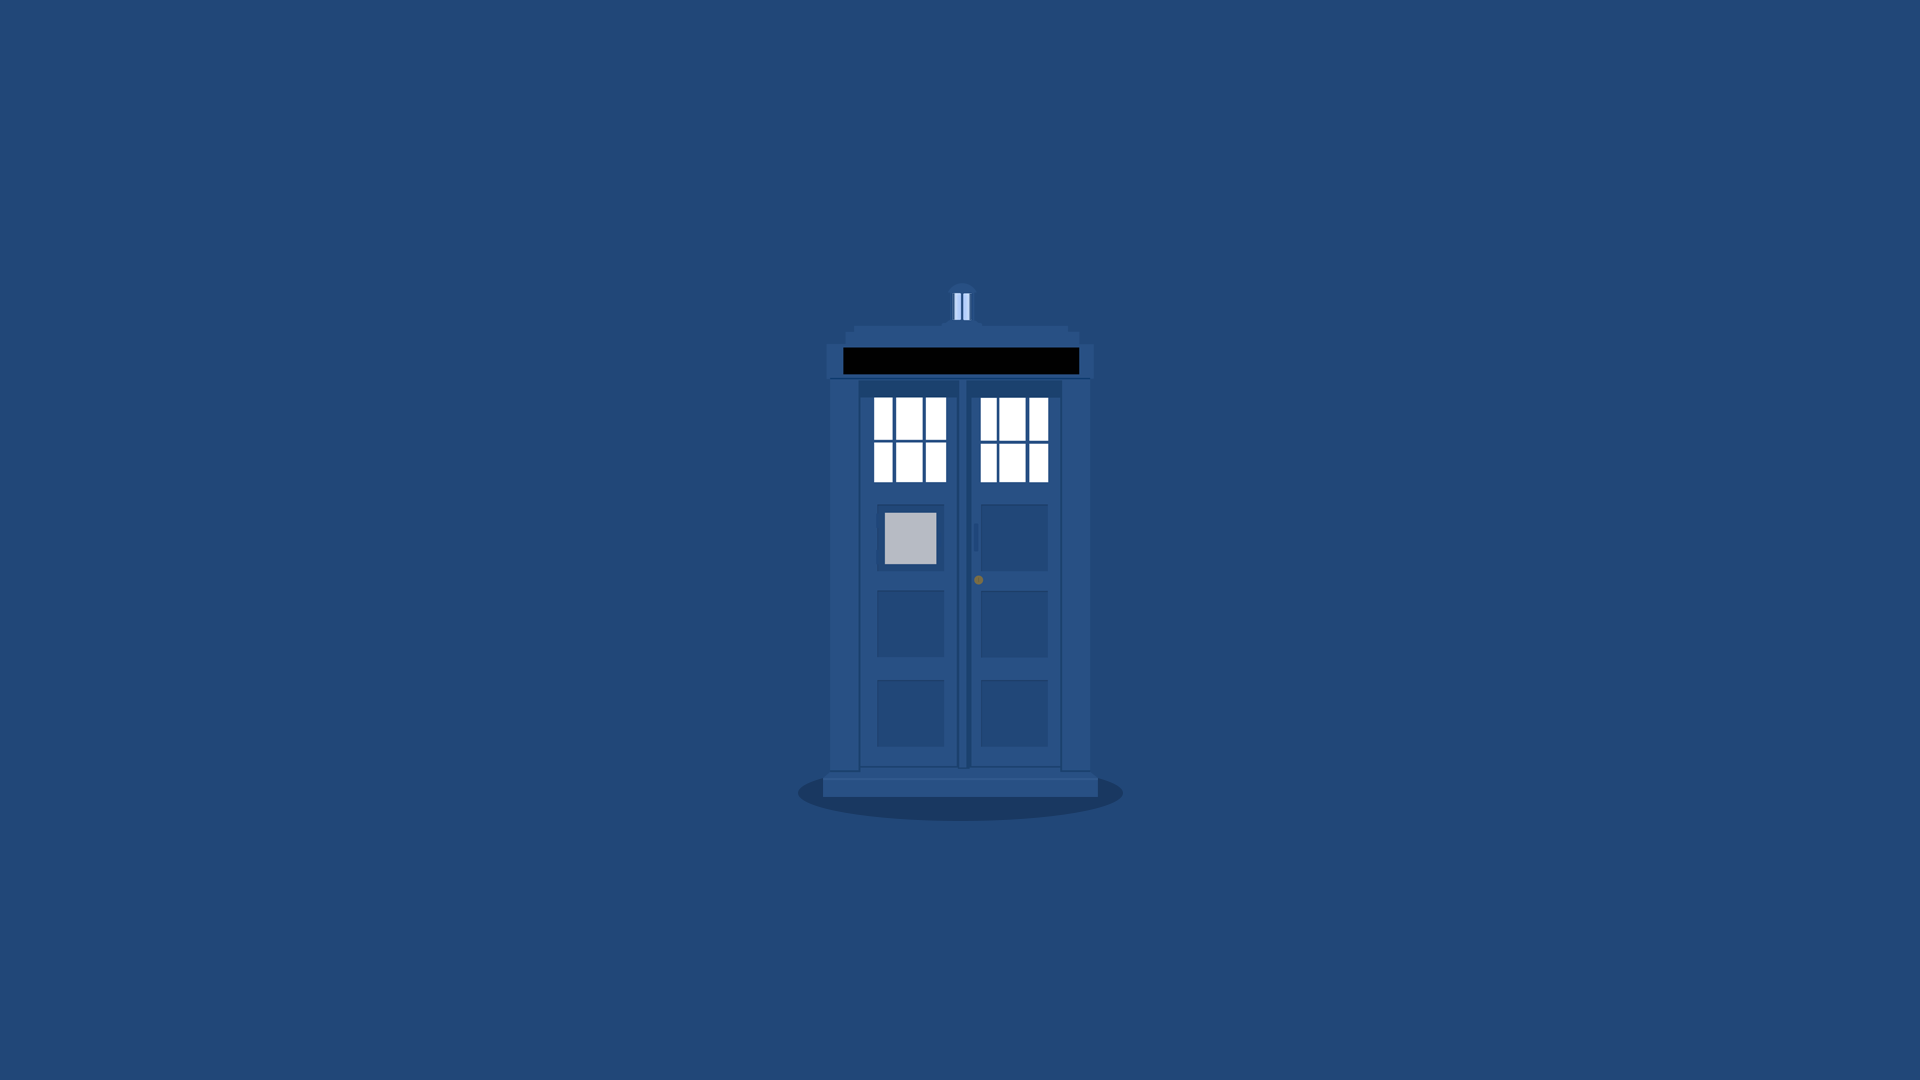 Pin By Hariet Huỳnh On Laptop Wallpaper Minimalist Wallpaper Tardis Wallpaper Minimal Wallpaper